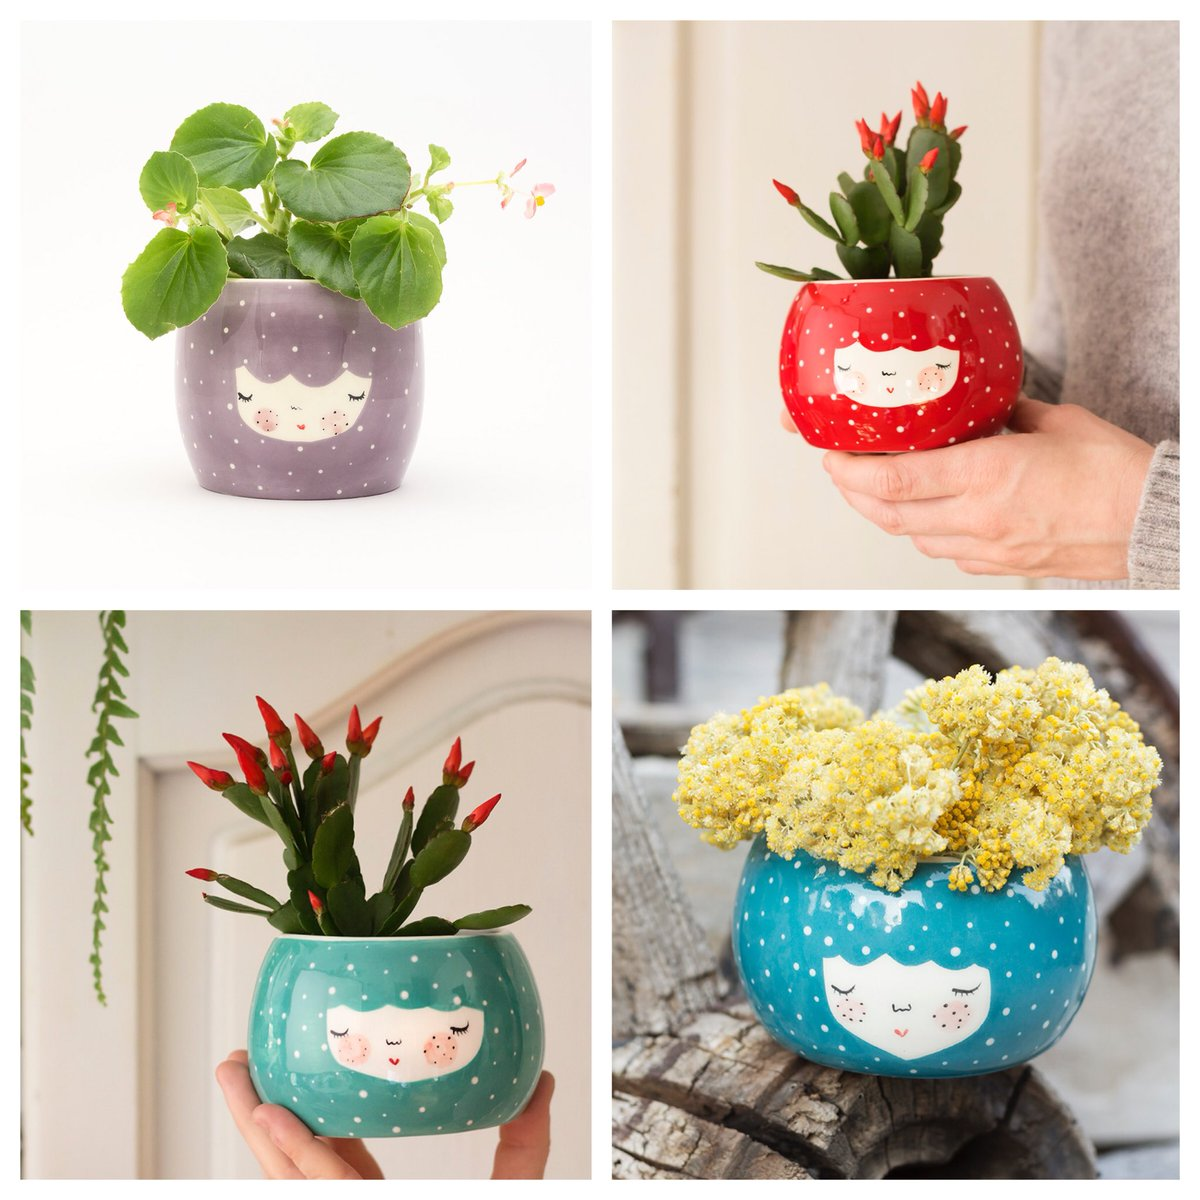 NEW! Charming #ceramic character #planters. Good luck picking a favourite! #handmade #heartmade<br>http://pic.twitter.com/Z4R8tNkvHH